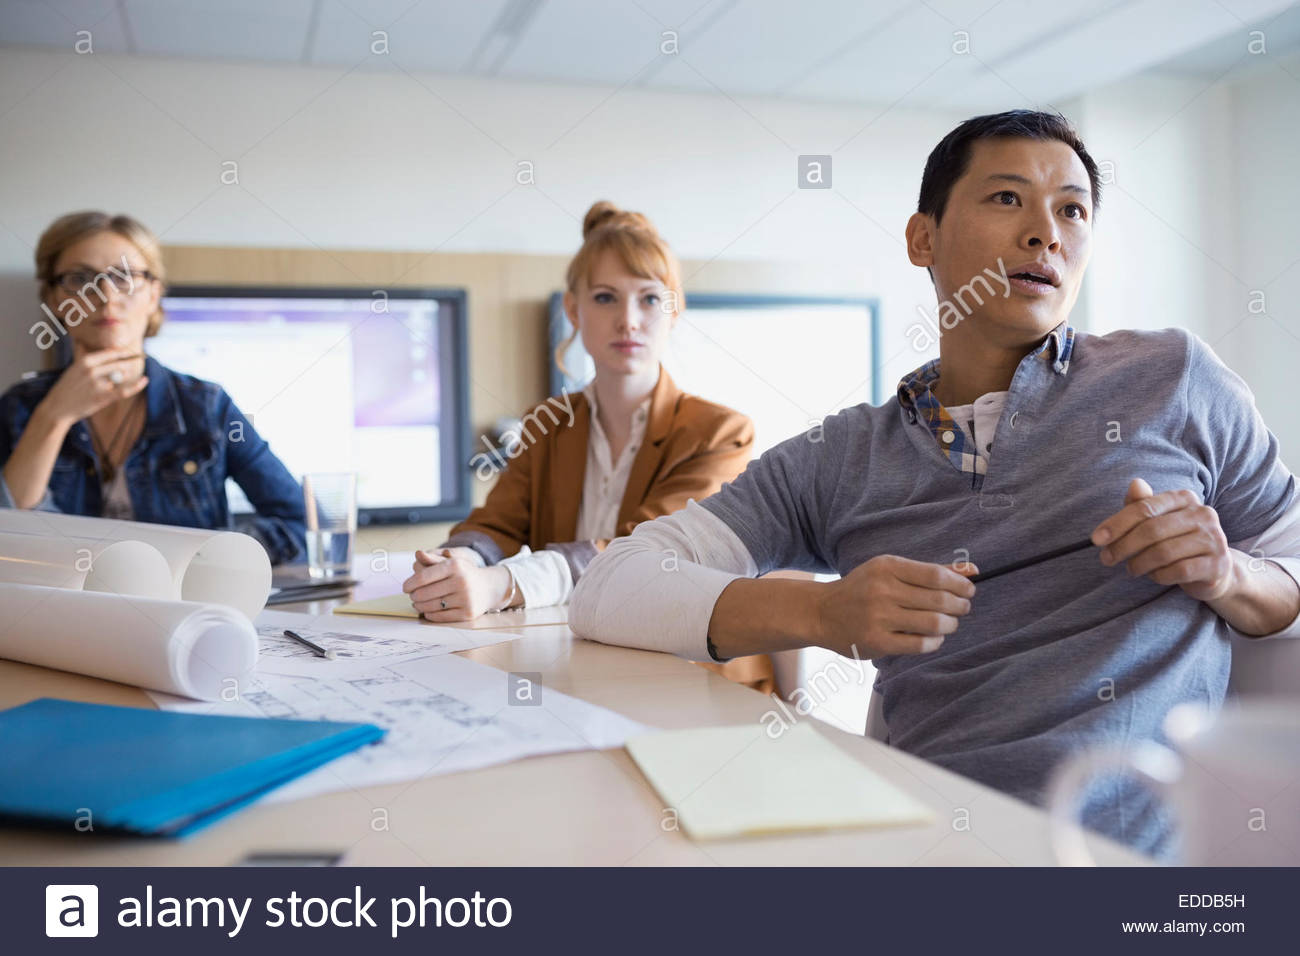 Business people listening in meeting - Stock Image